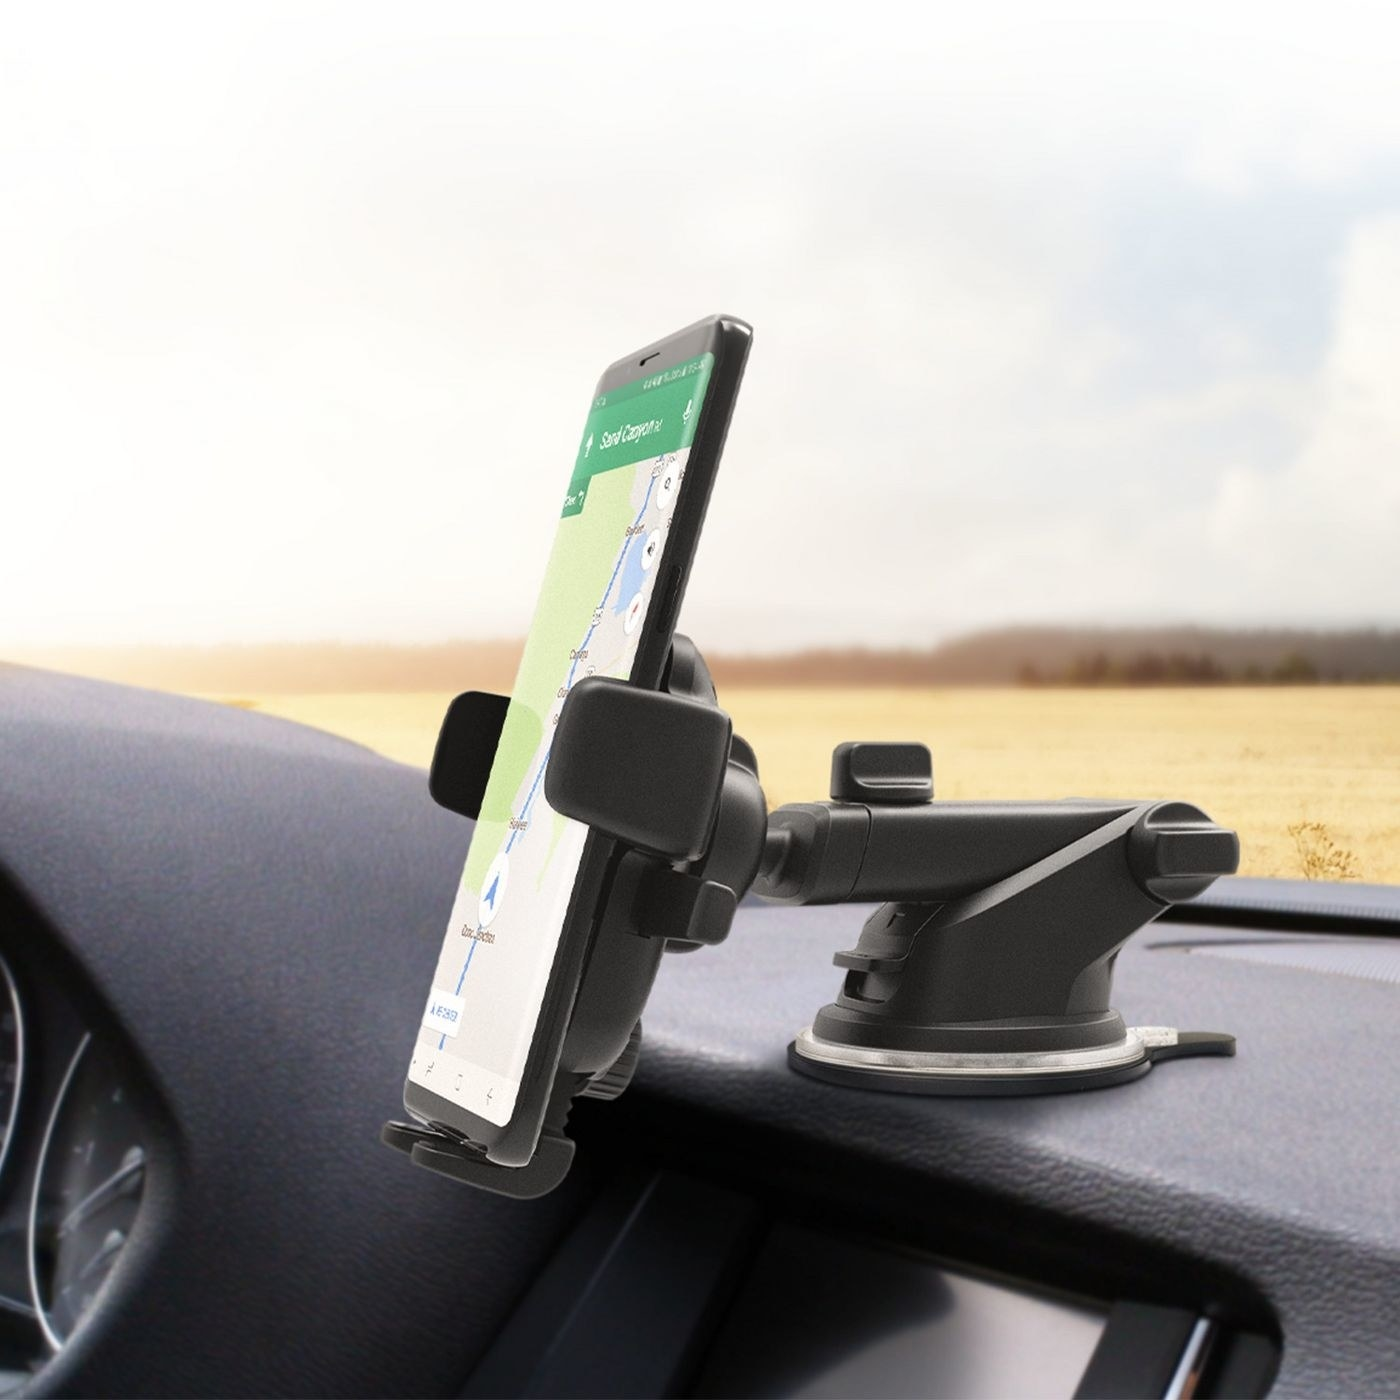 The mount placed on the dashboard of a car holding a smartphone